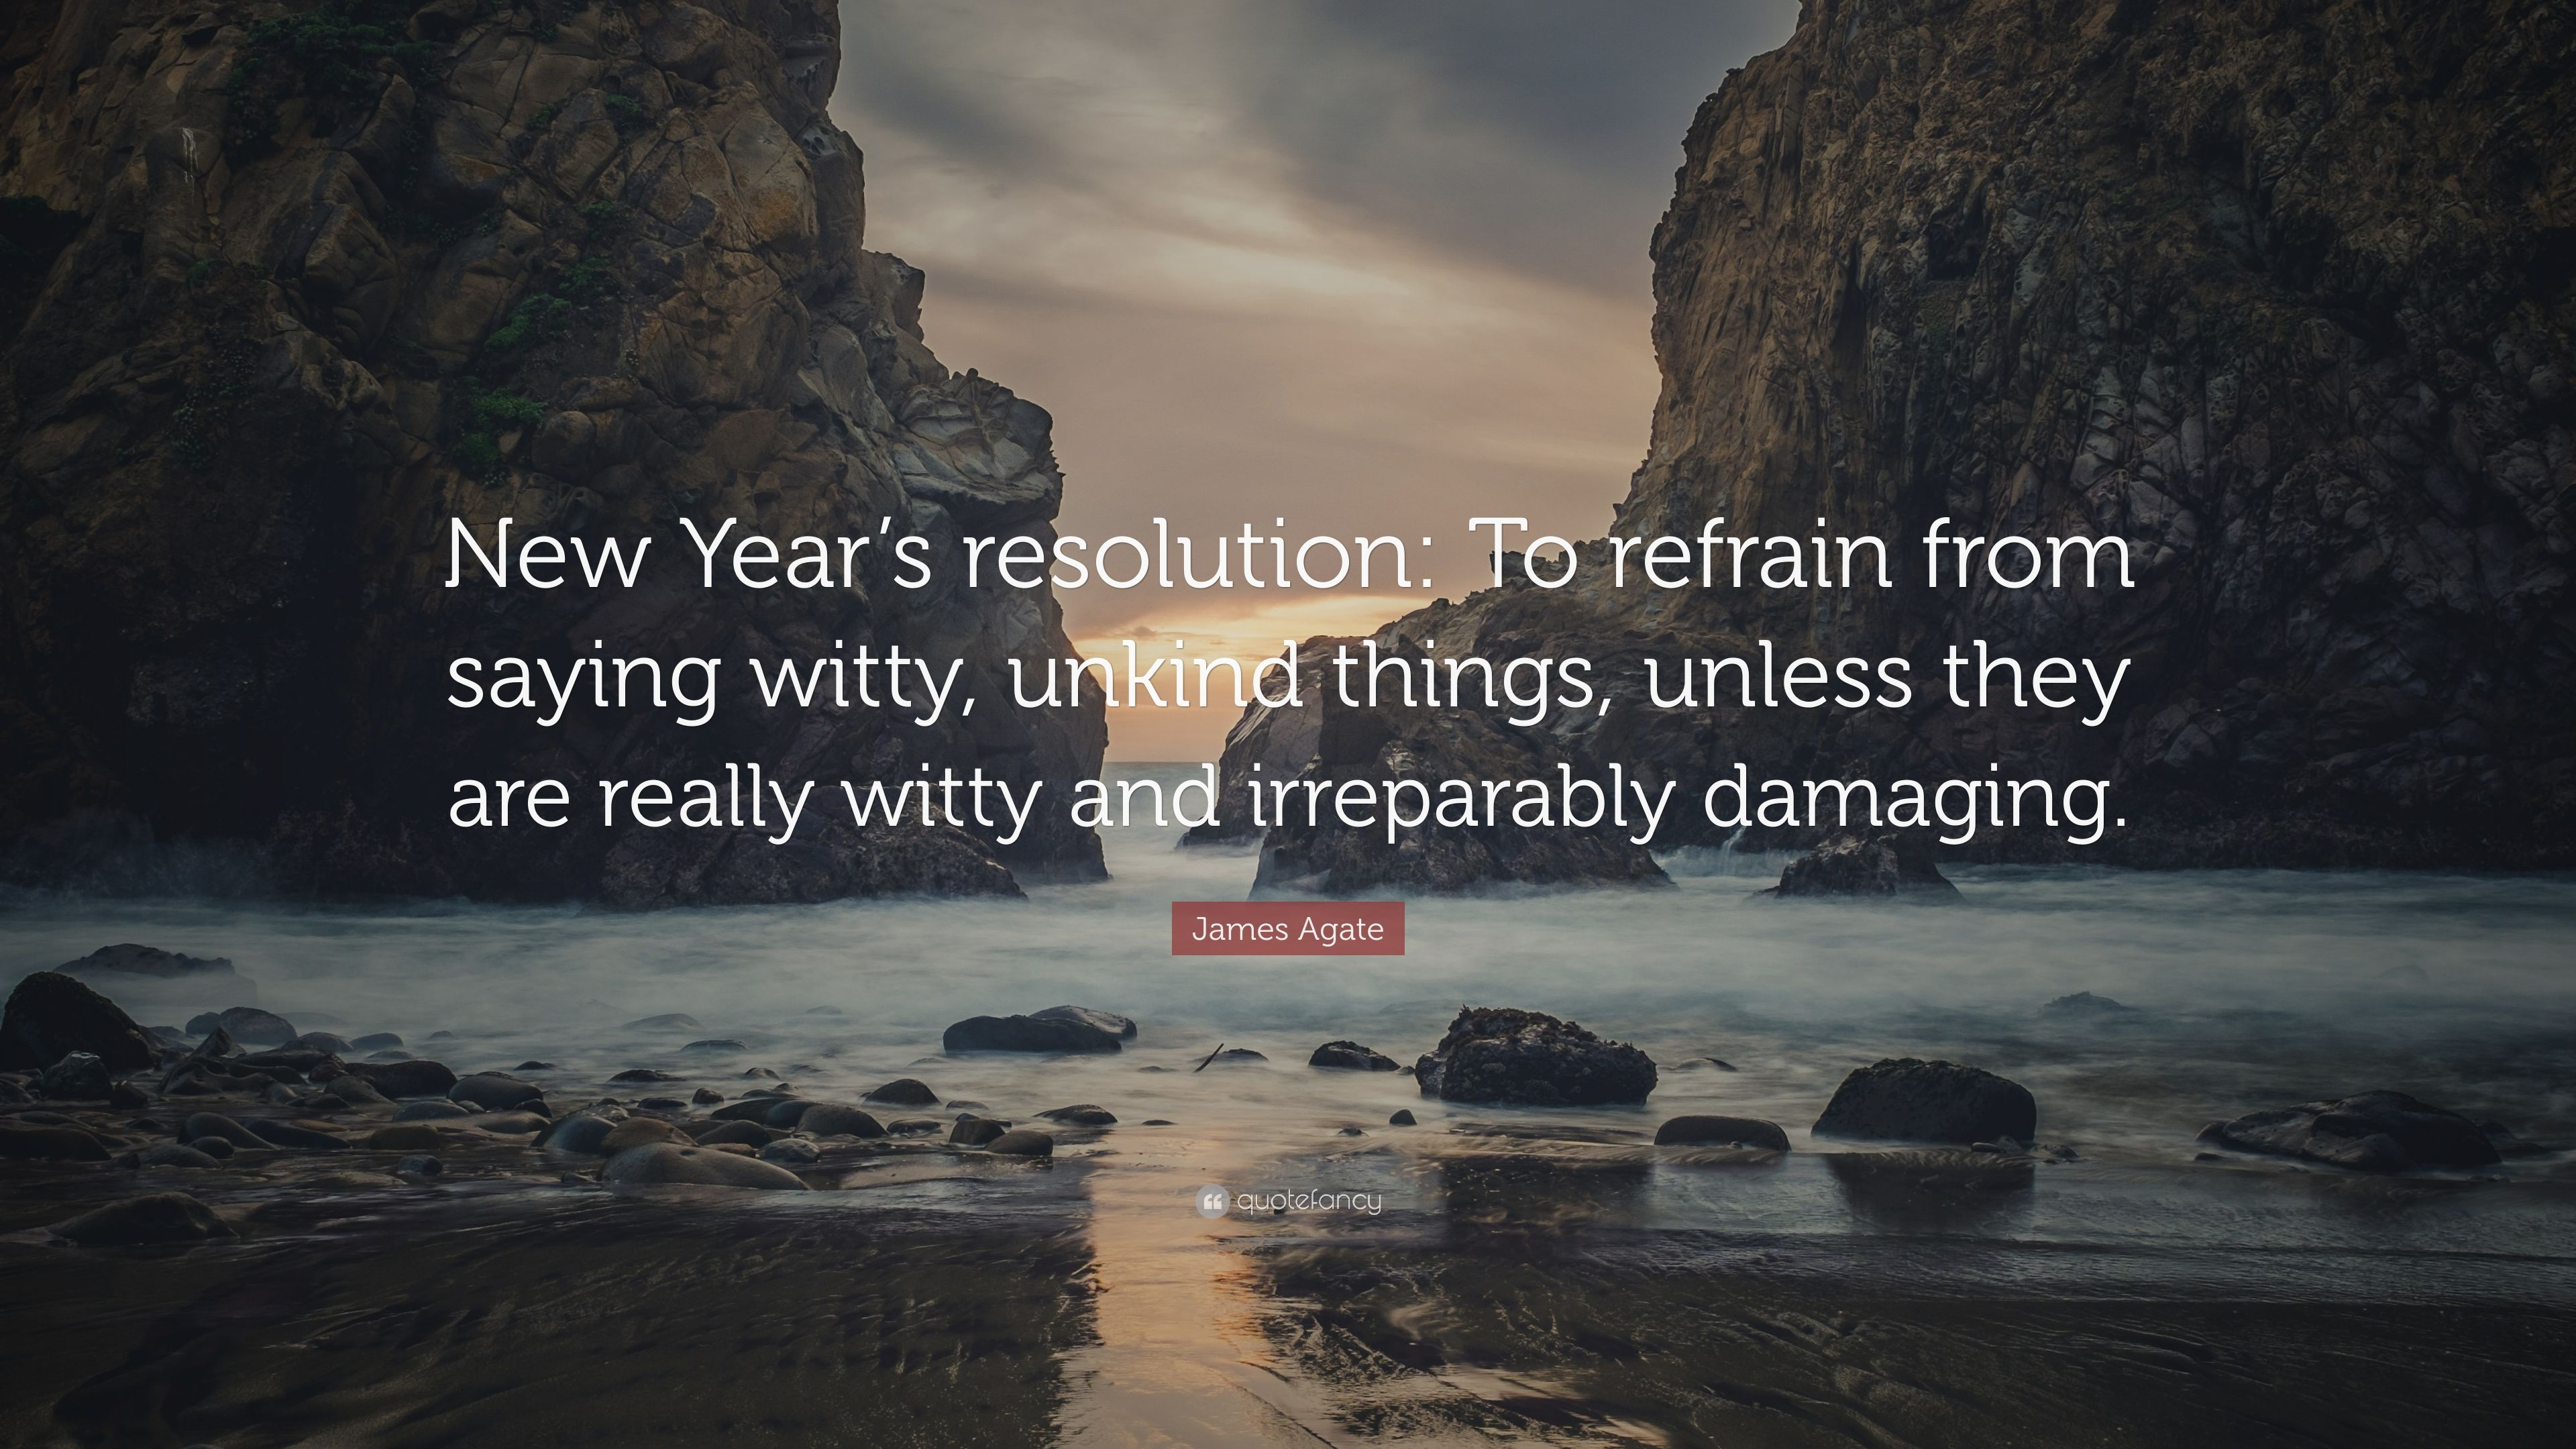 james agate quote new years resolution to refrain from saying witty unkind